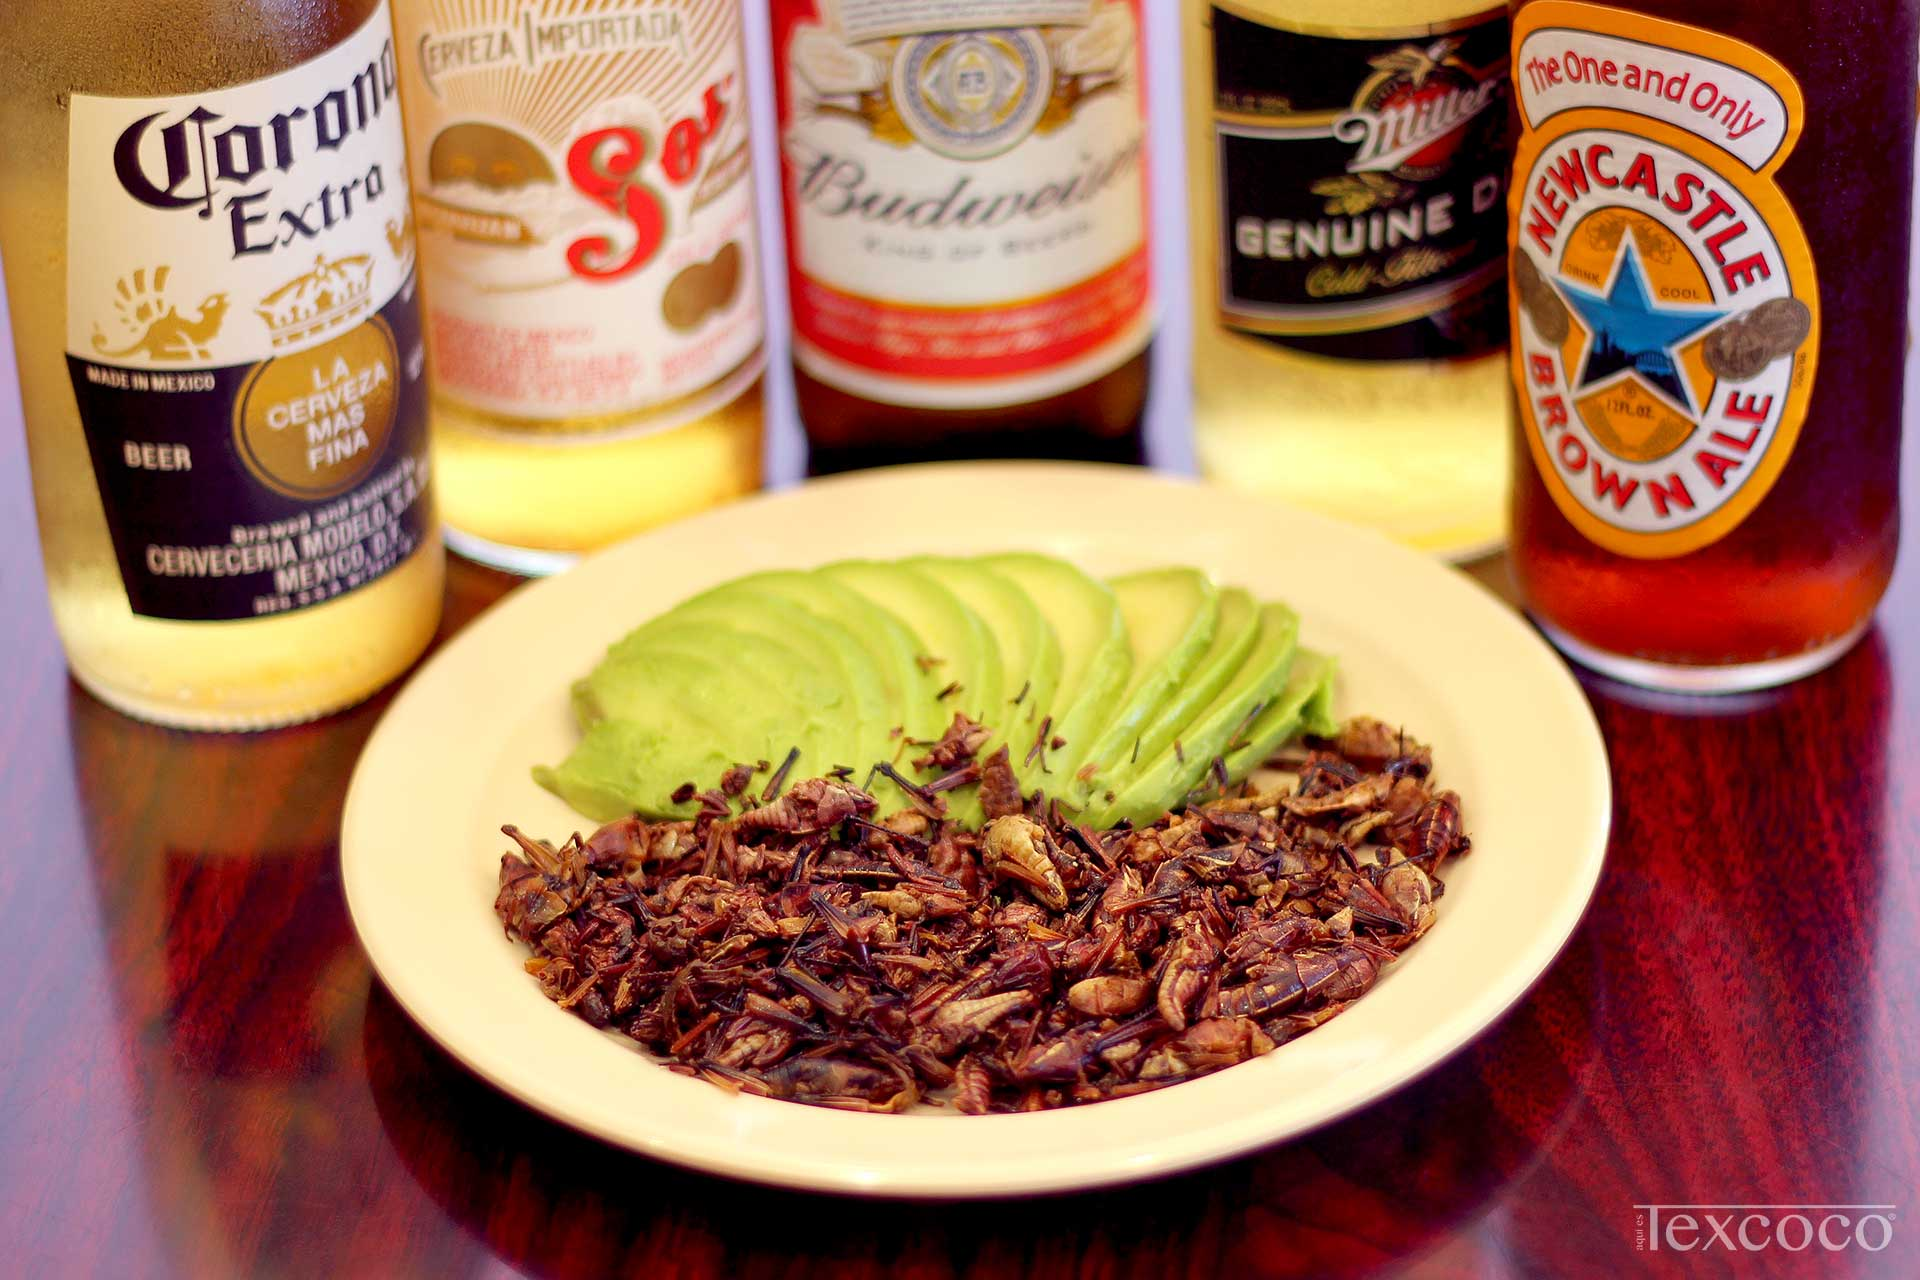 Chapulines, Avocado, and Beer